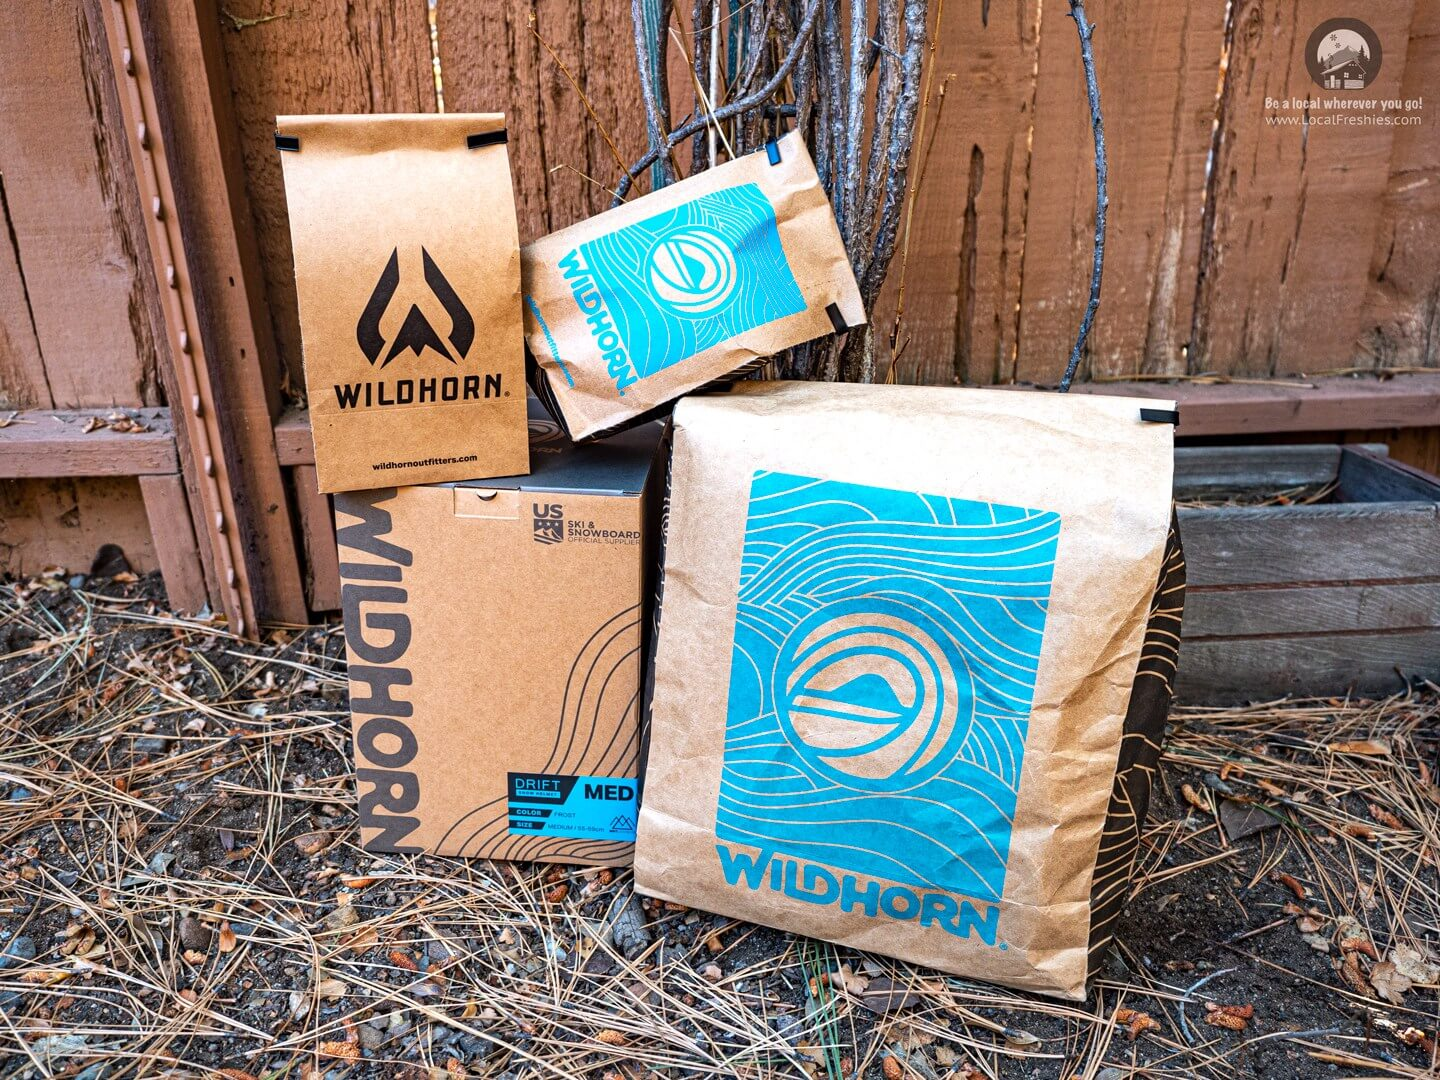 Wildhorn Outfitters Packaging Of Their Products